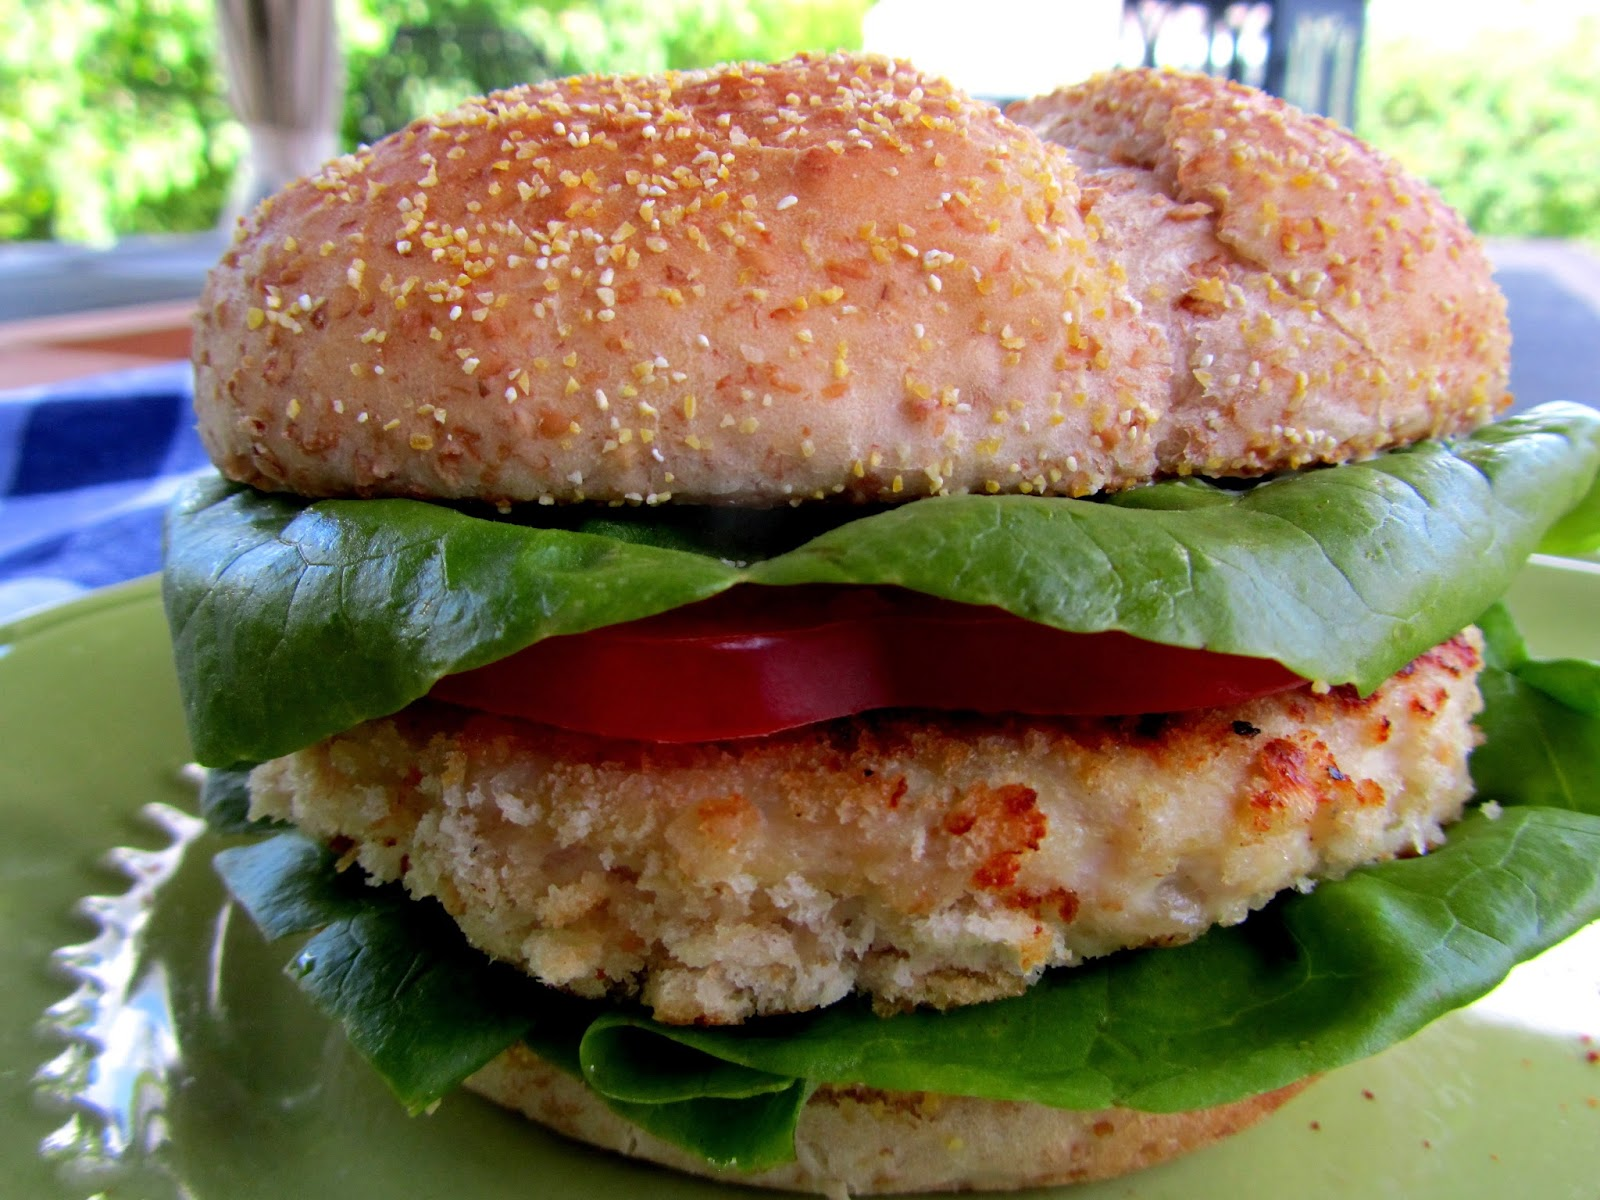 images of chicken burgers - photo #12